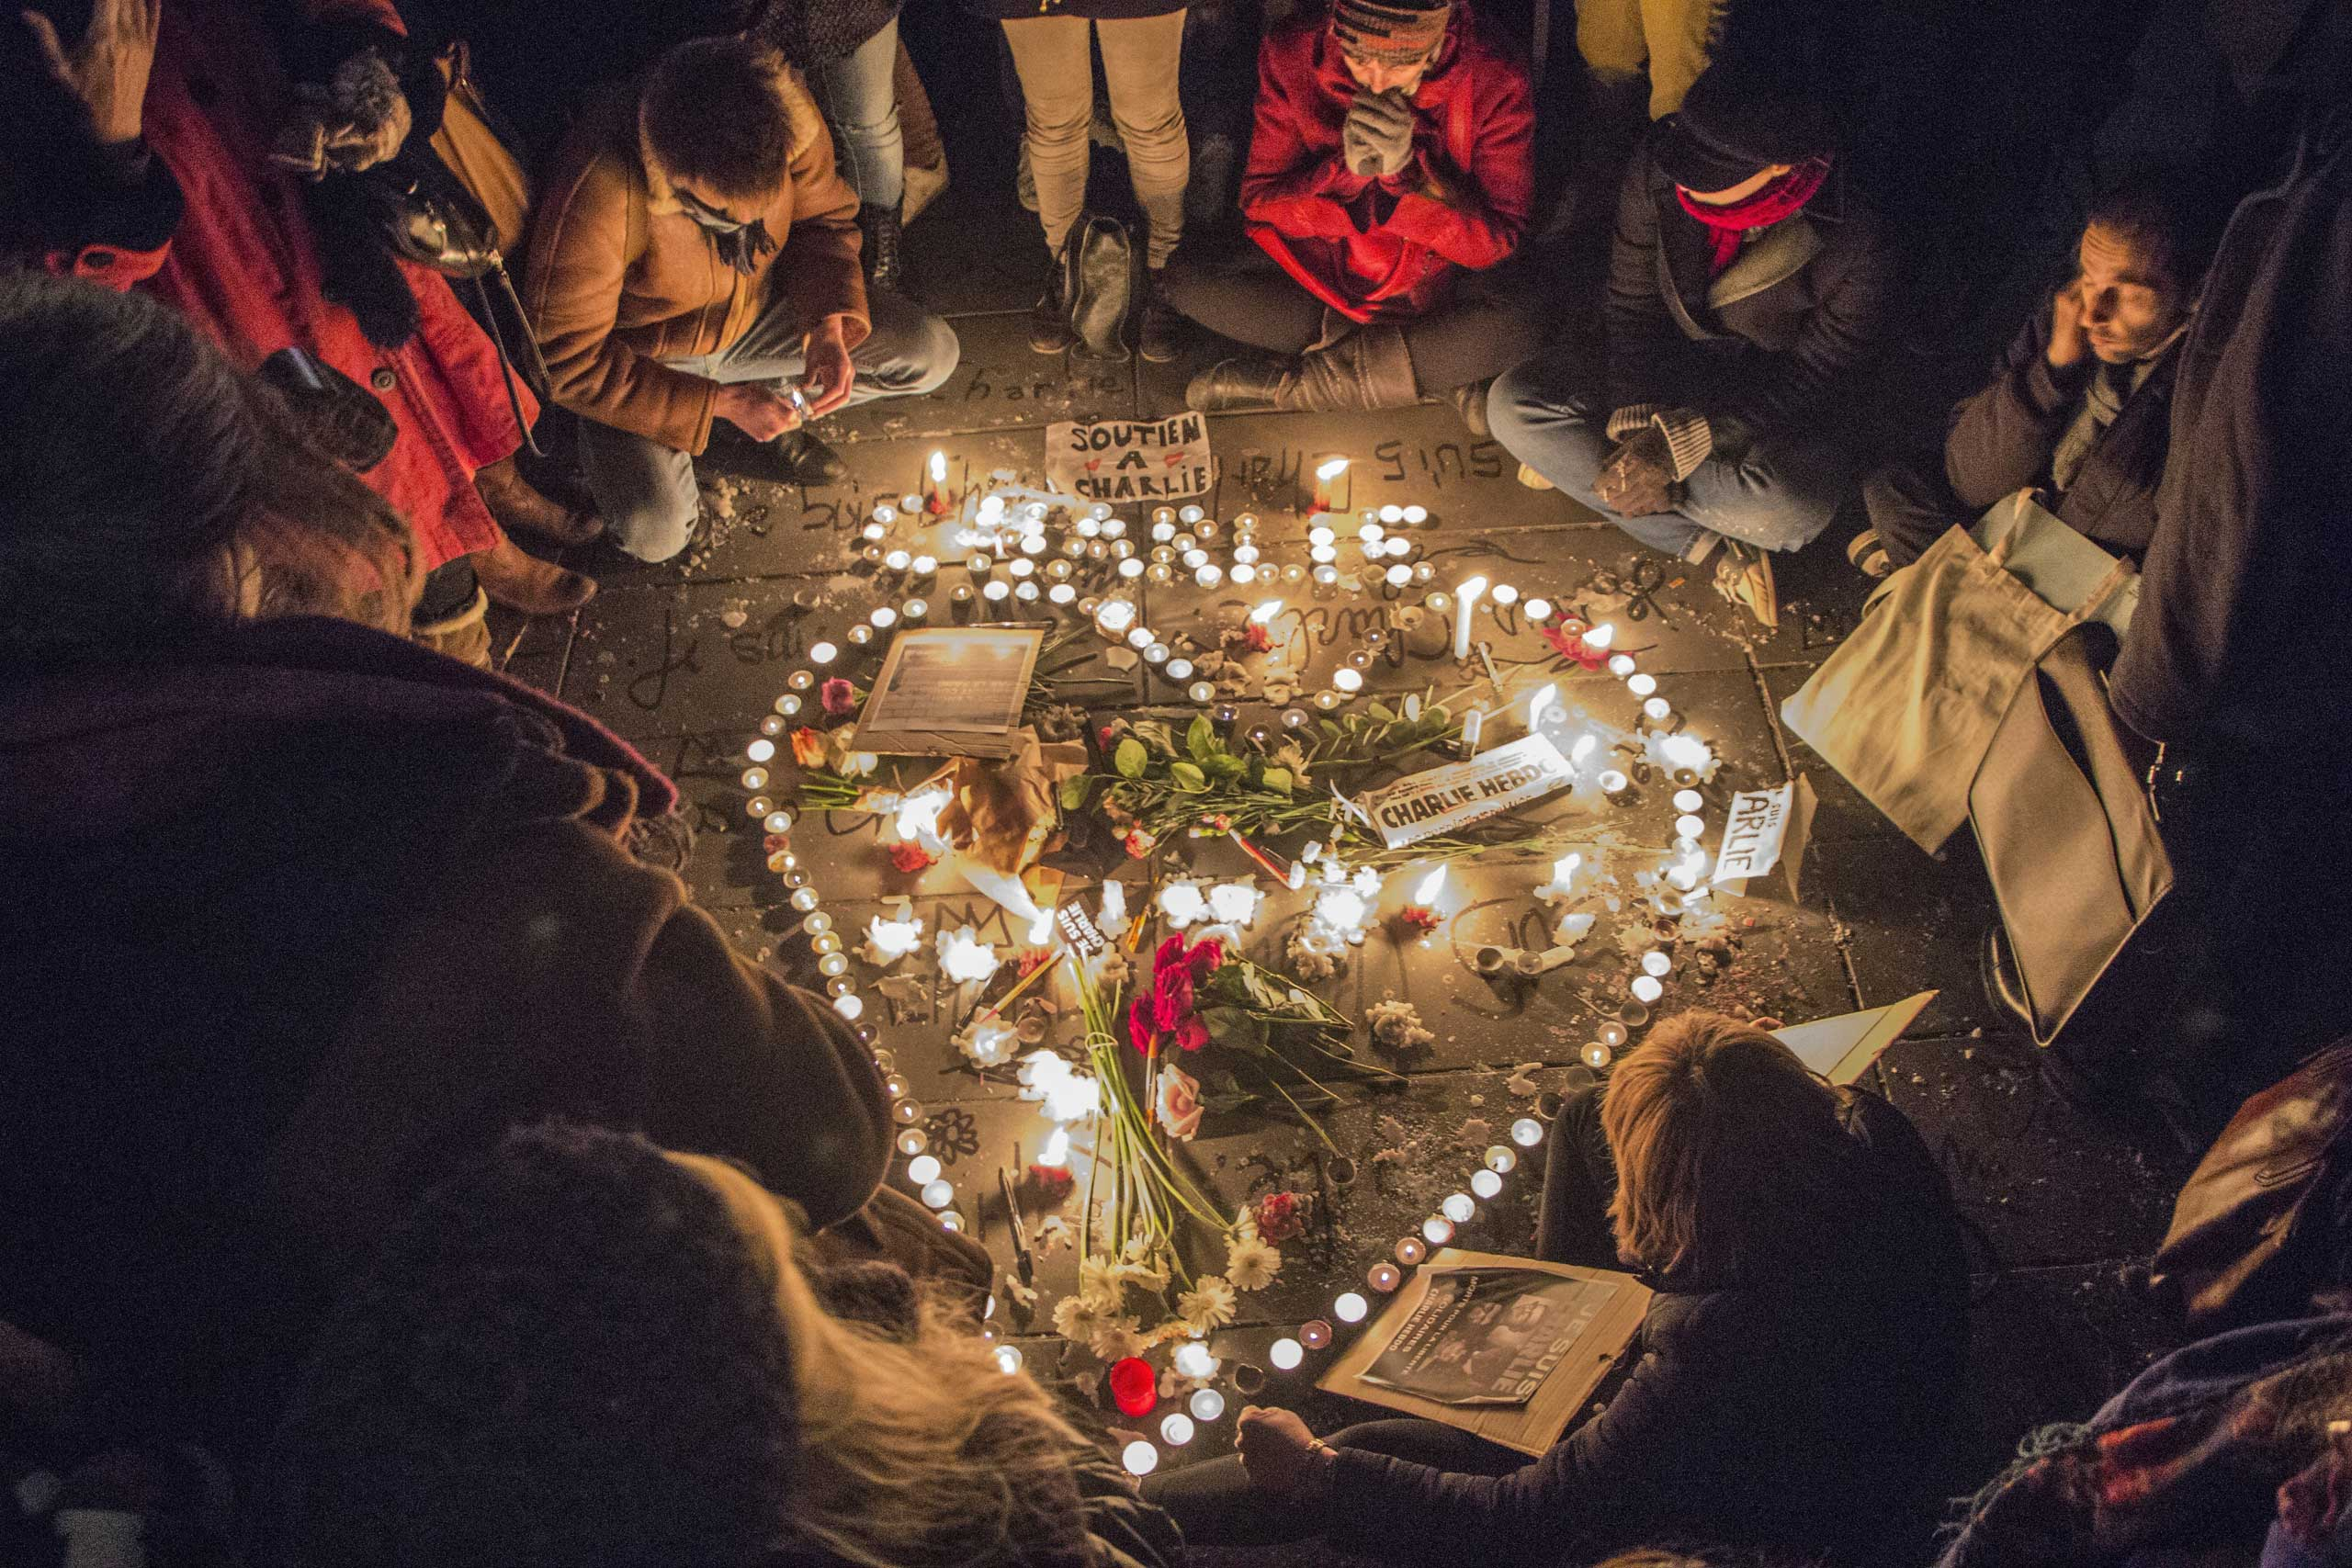 A tribute of flowers and candles in the shape of a heart is set up at Place de la Republique in Paris in memory of the victims of the Charlie Hebdo terrorist attack, on Jan. 7, 2015 in Paris.